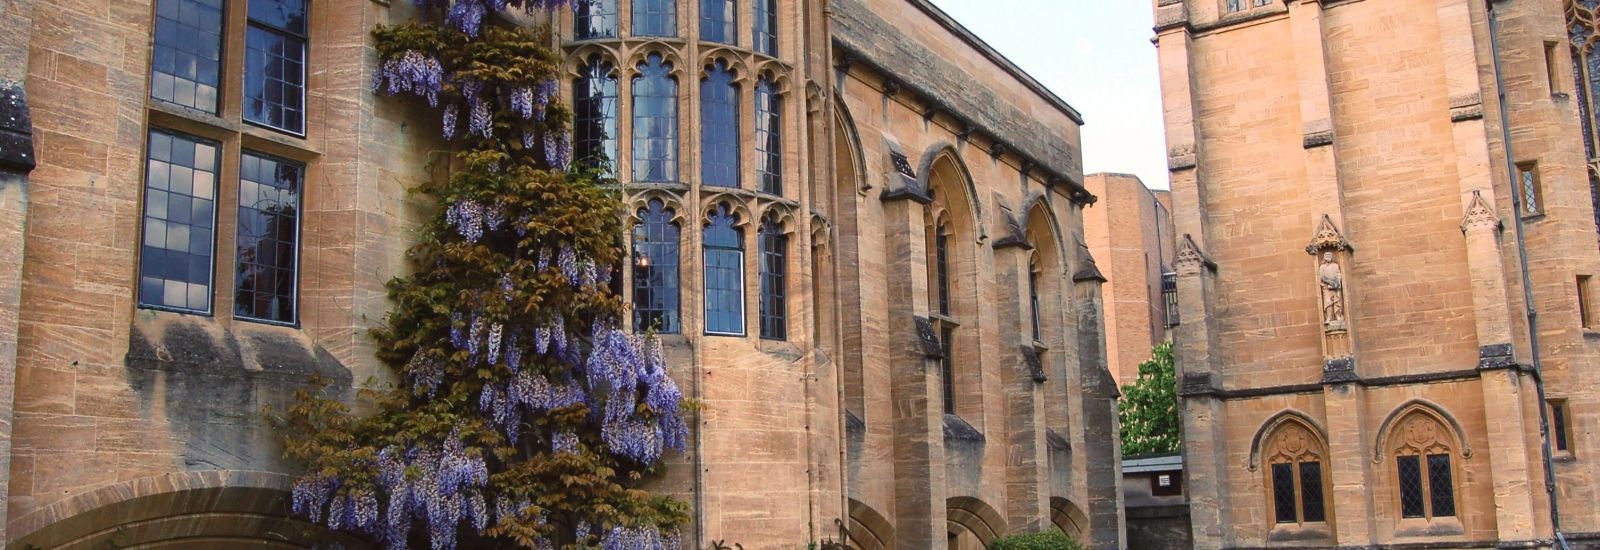 Buildings with wisteria in Mansfield College